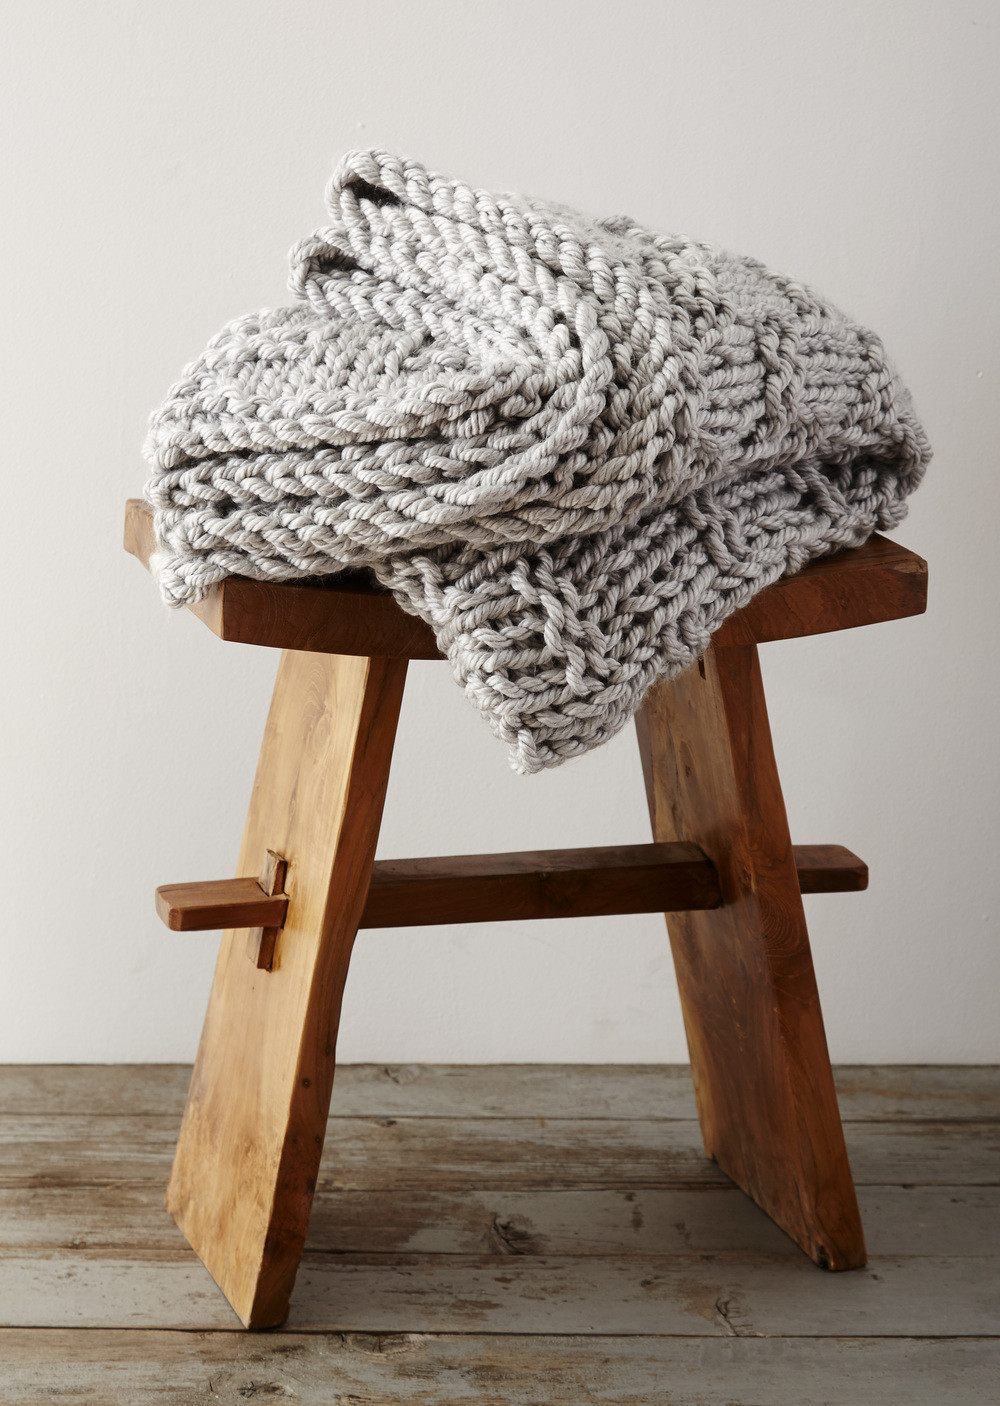 Chunky Knit Throw Fresh Extra Chunky Gratitude Blanket Of Superb 50 Pics Chunky Knit Throw